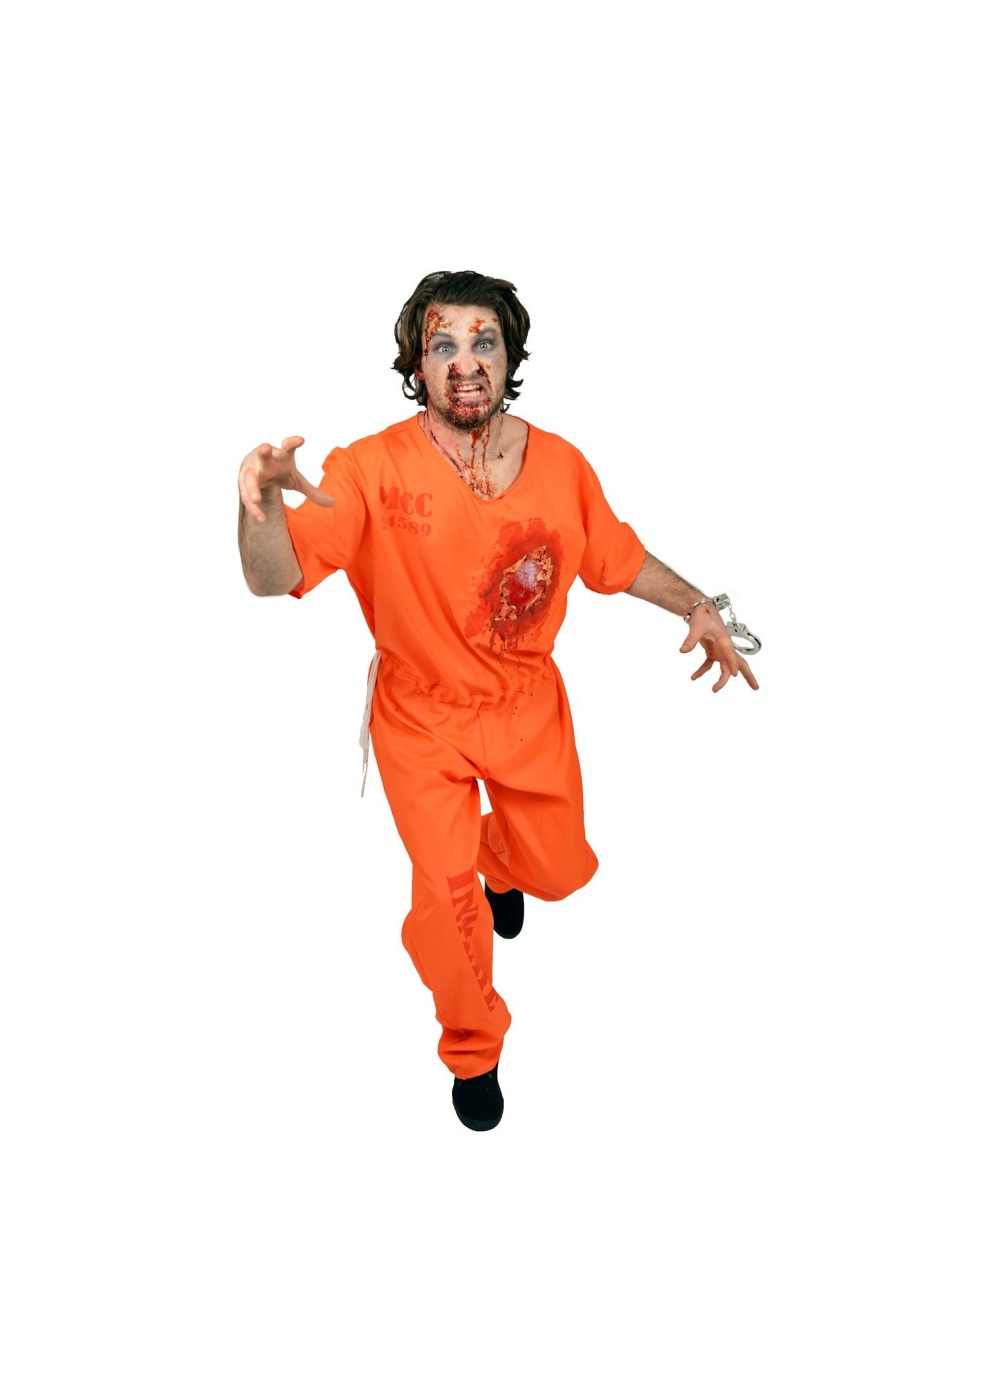 Beating Heart Mens Prisoner Costume  sc 1 st  Wonder Costumes & Beating Heart Mens Prisoner Costume - Funny Costumes